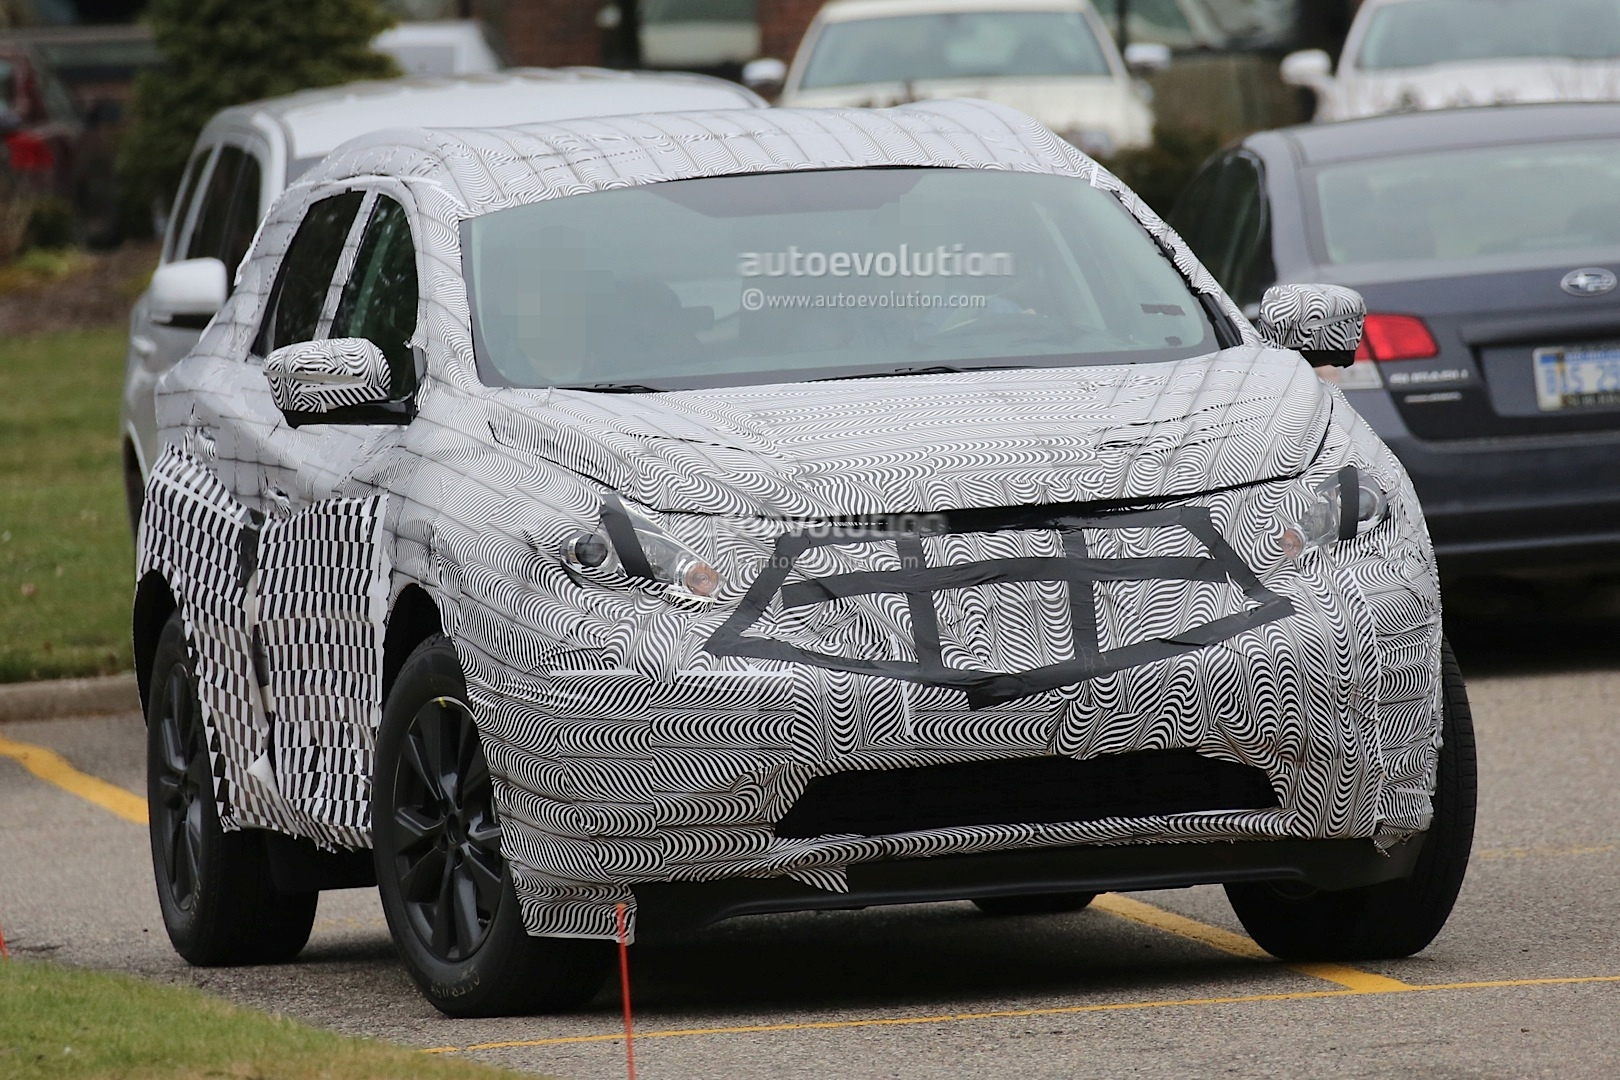 Spyshots: 2016 Nissan Murano First Photos - autoevolution